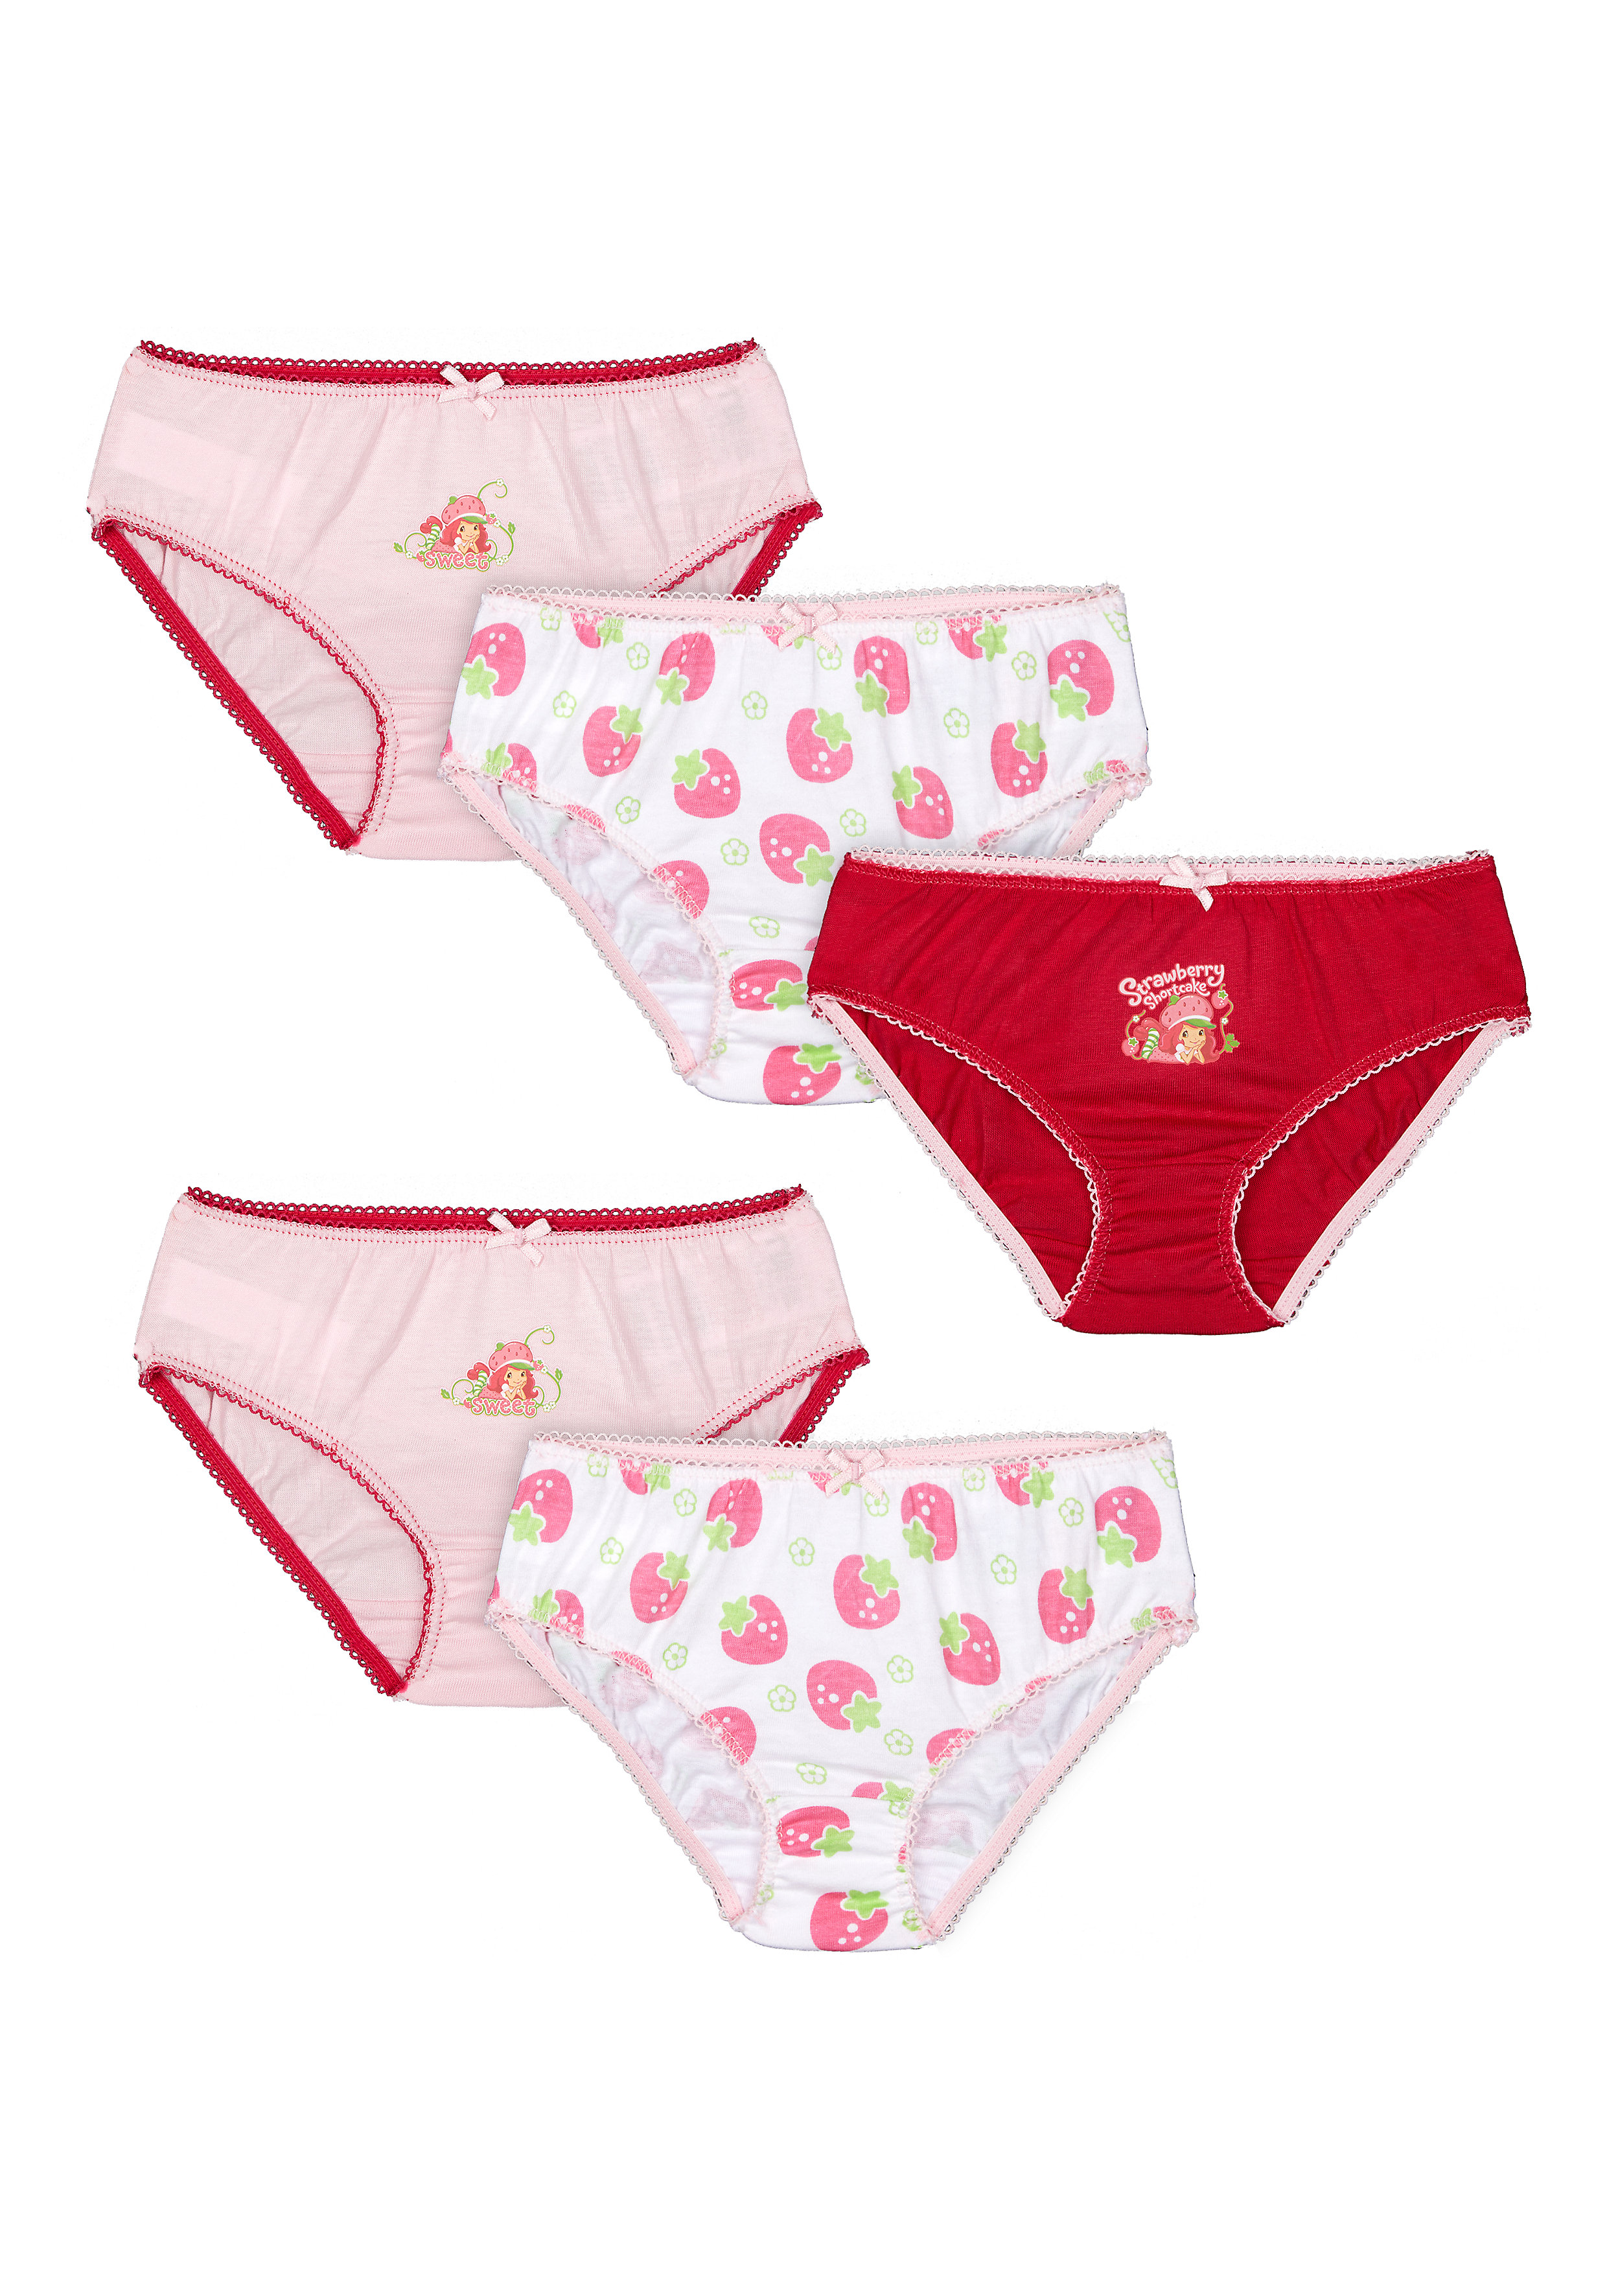 Mothercare | Girls Briefs Printed - Pack Of 5 - Multicolor